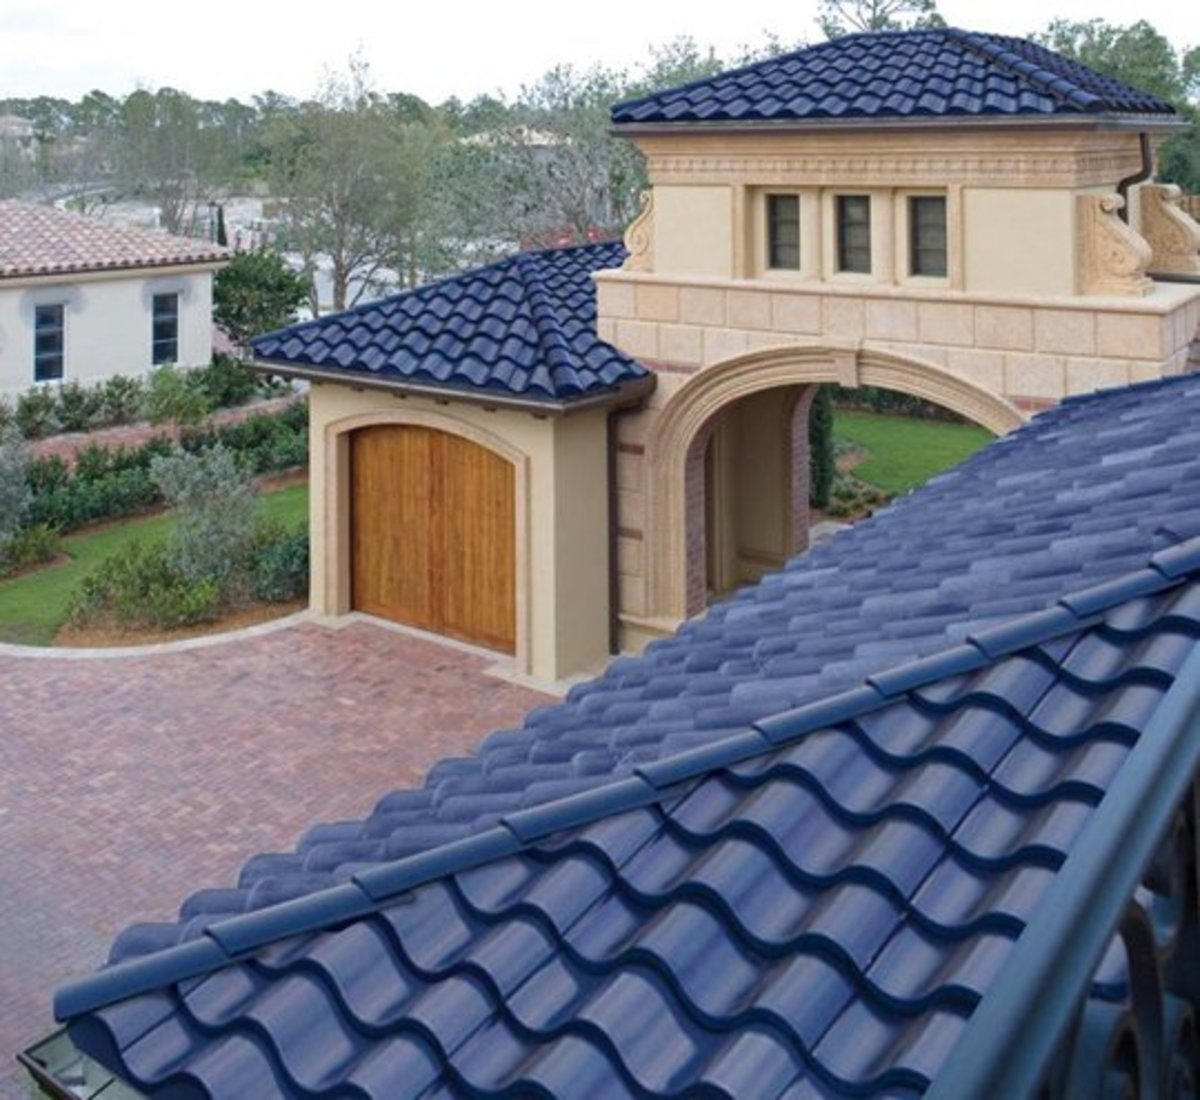 Home Remodeling Improvement Tile Roofs Spanish Style